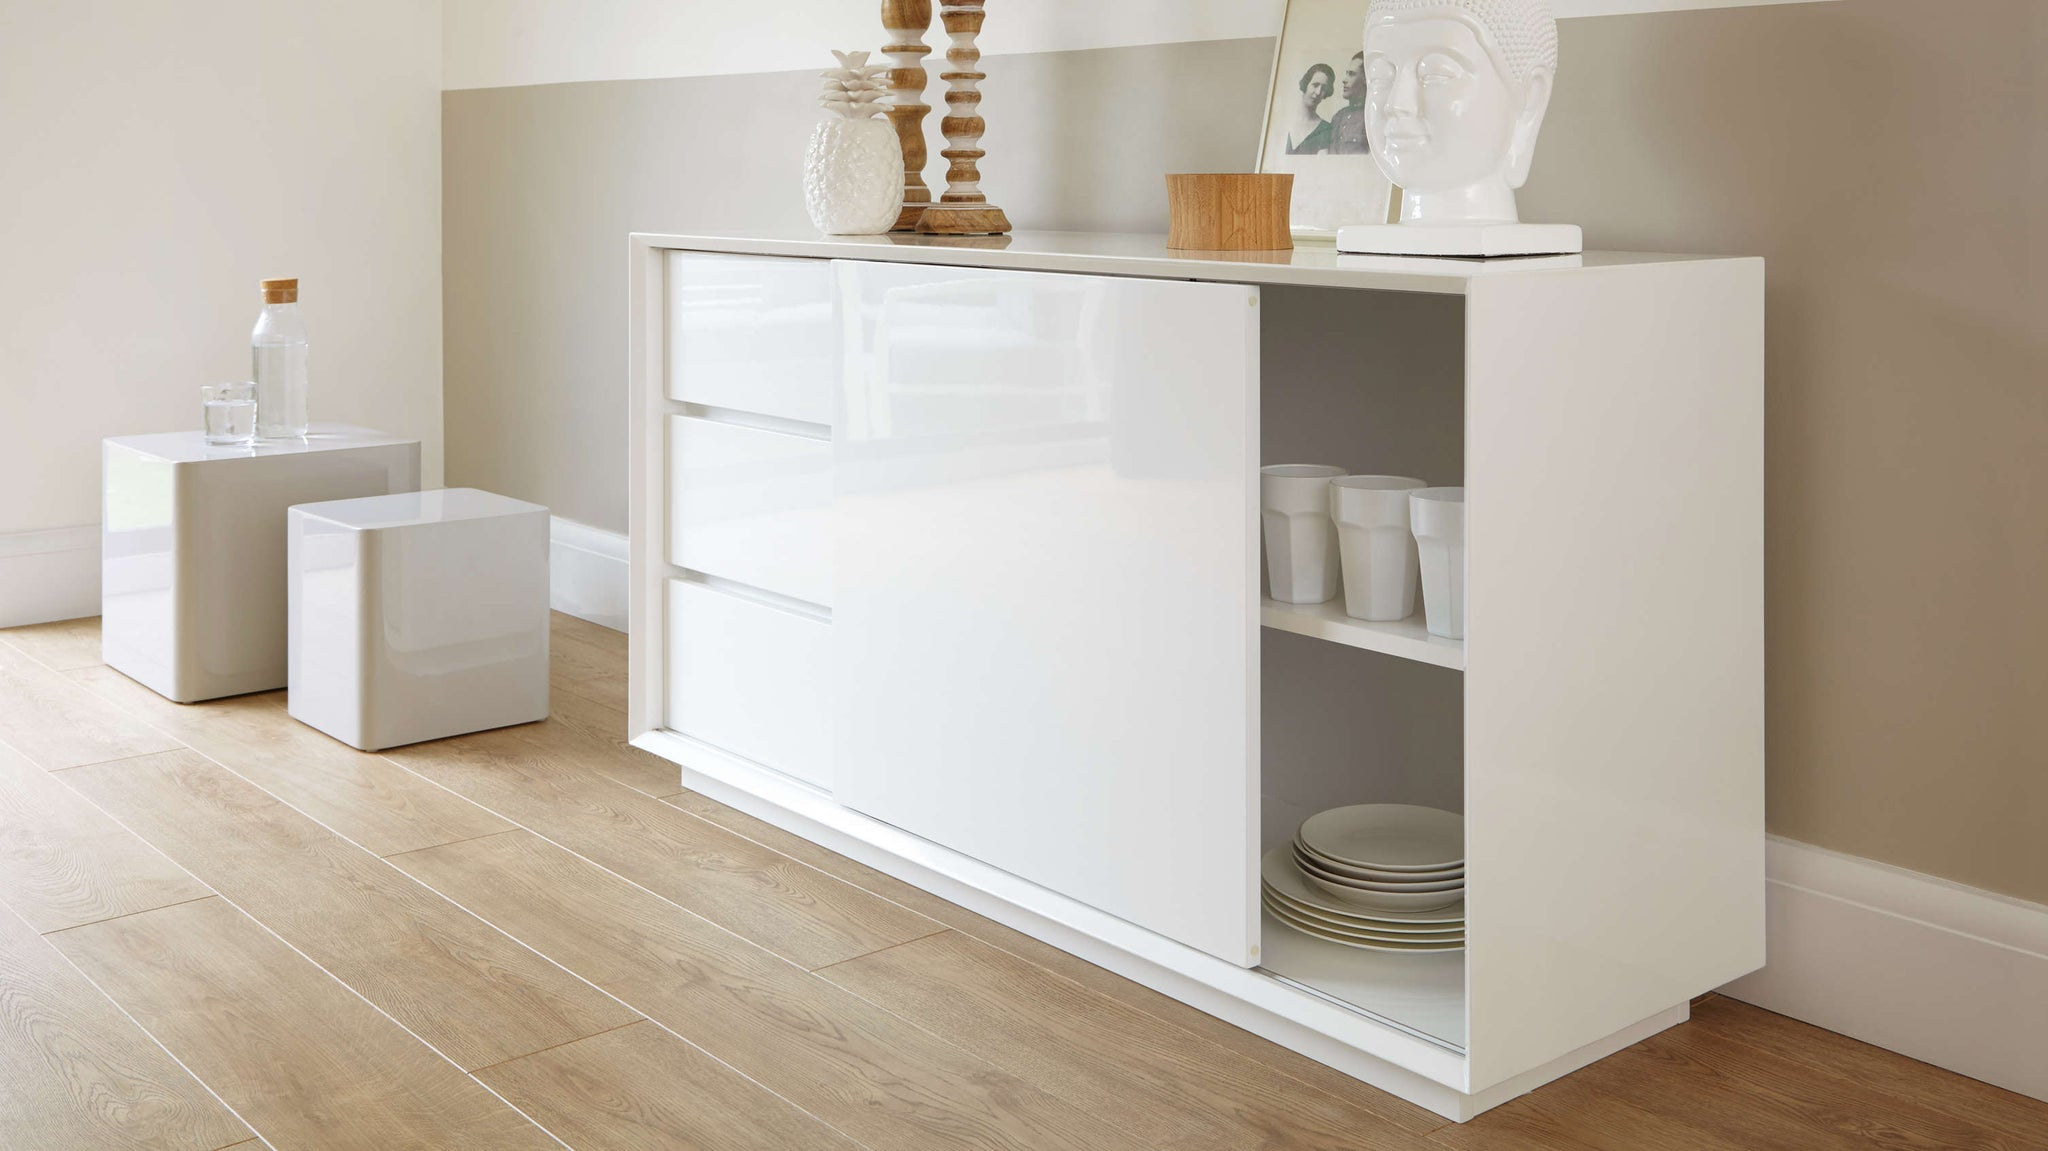 Designer Contemporary White Gloss Sideboard with Drawers Julia Kendell